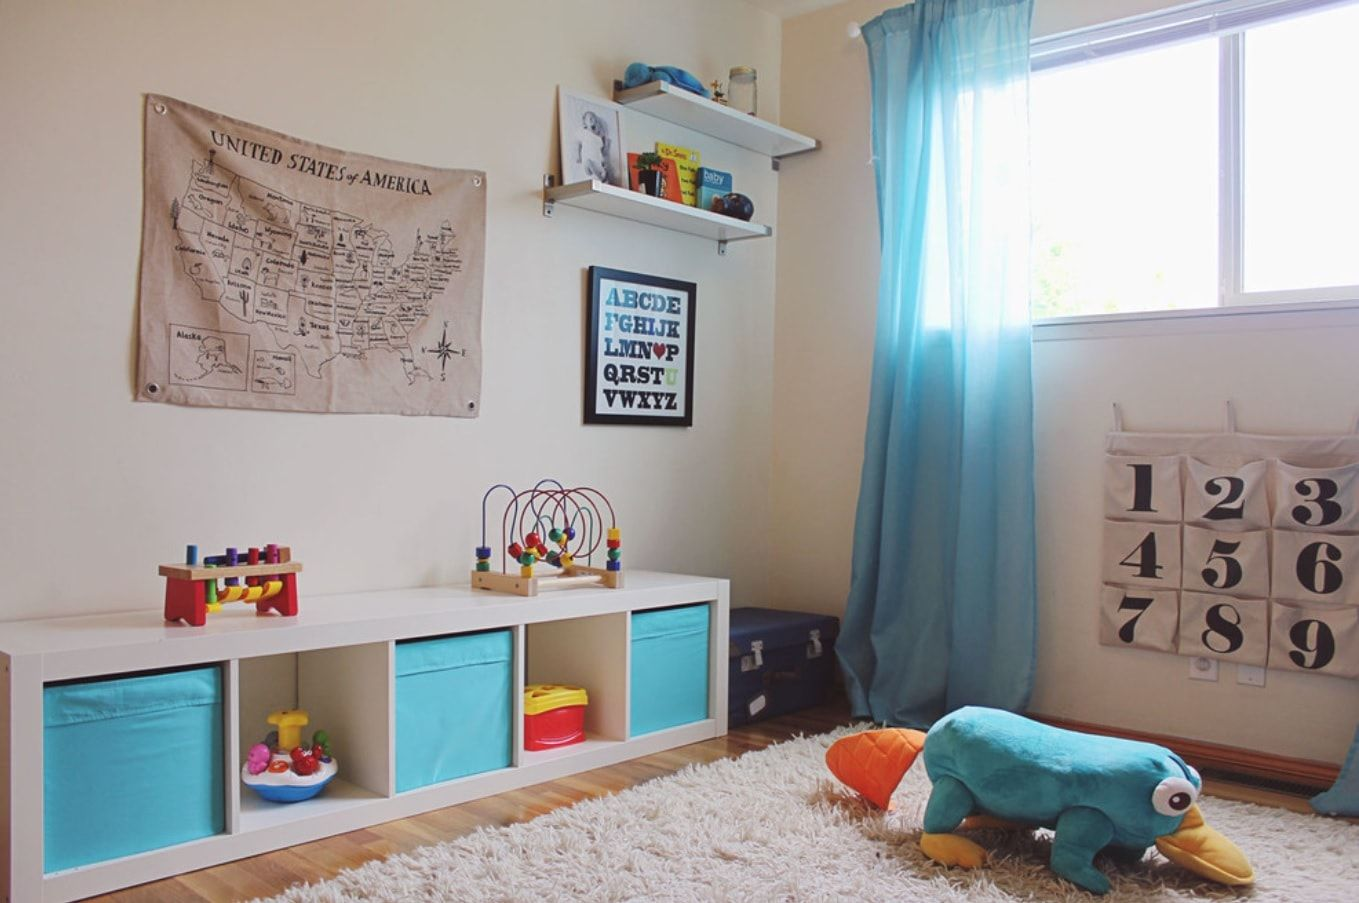 Decorating Ideas for Toddler Boys Bedrooms. Many developing options in the equipped room with fluffy carpeting